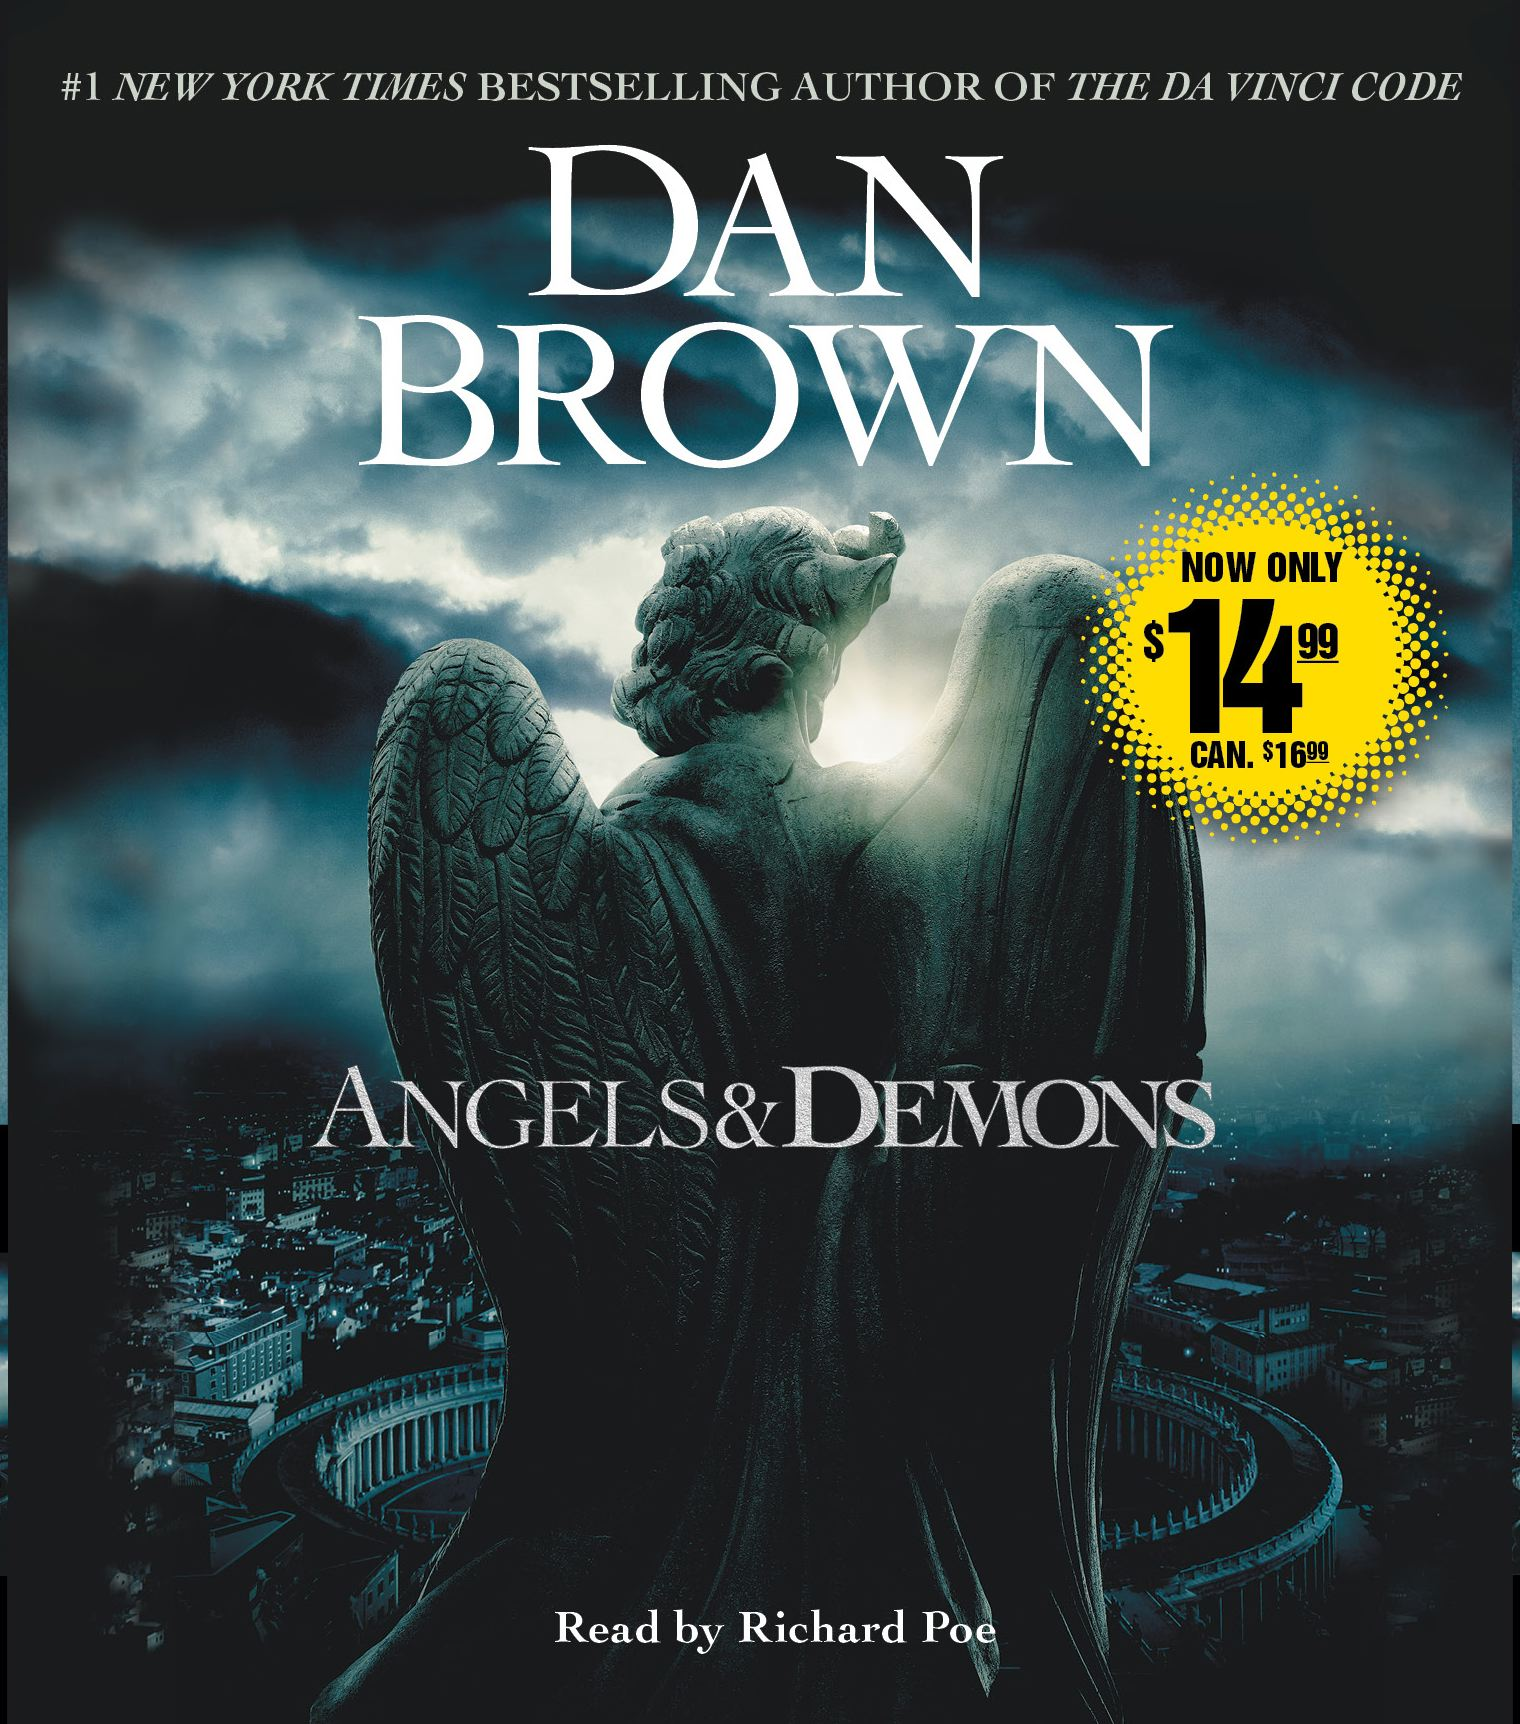 Angels-demons-9781442338111_hr